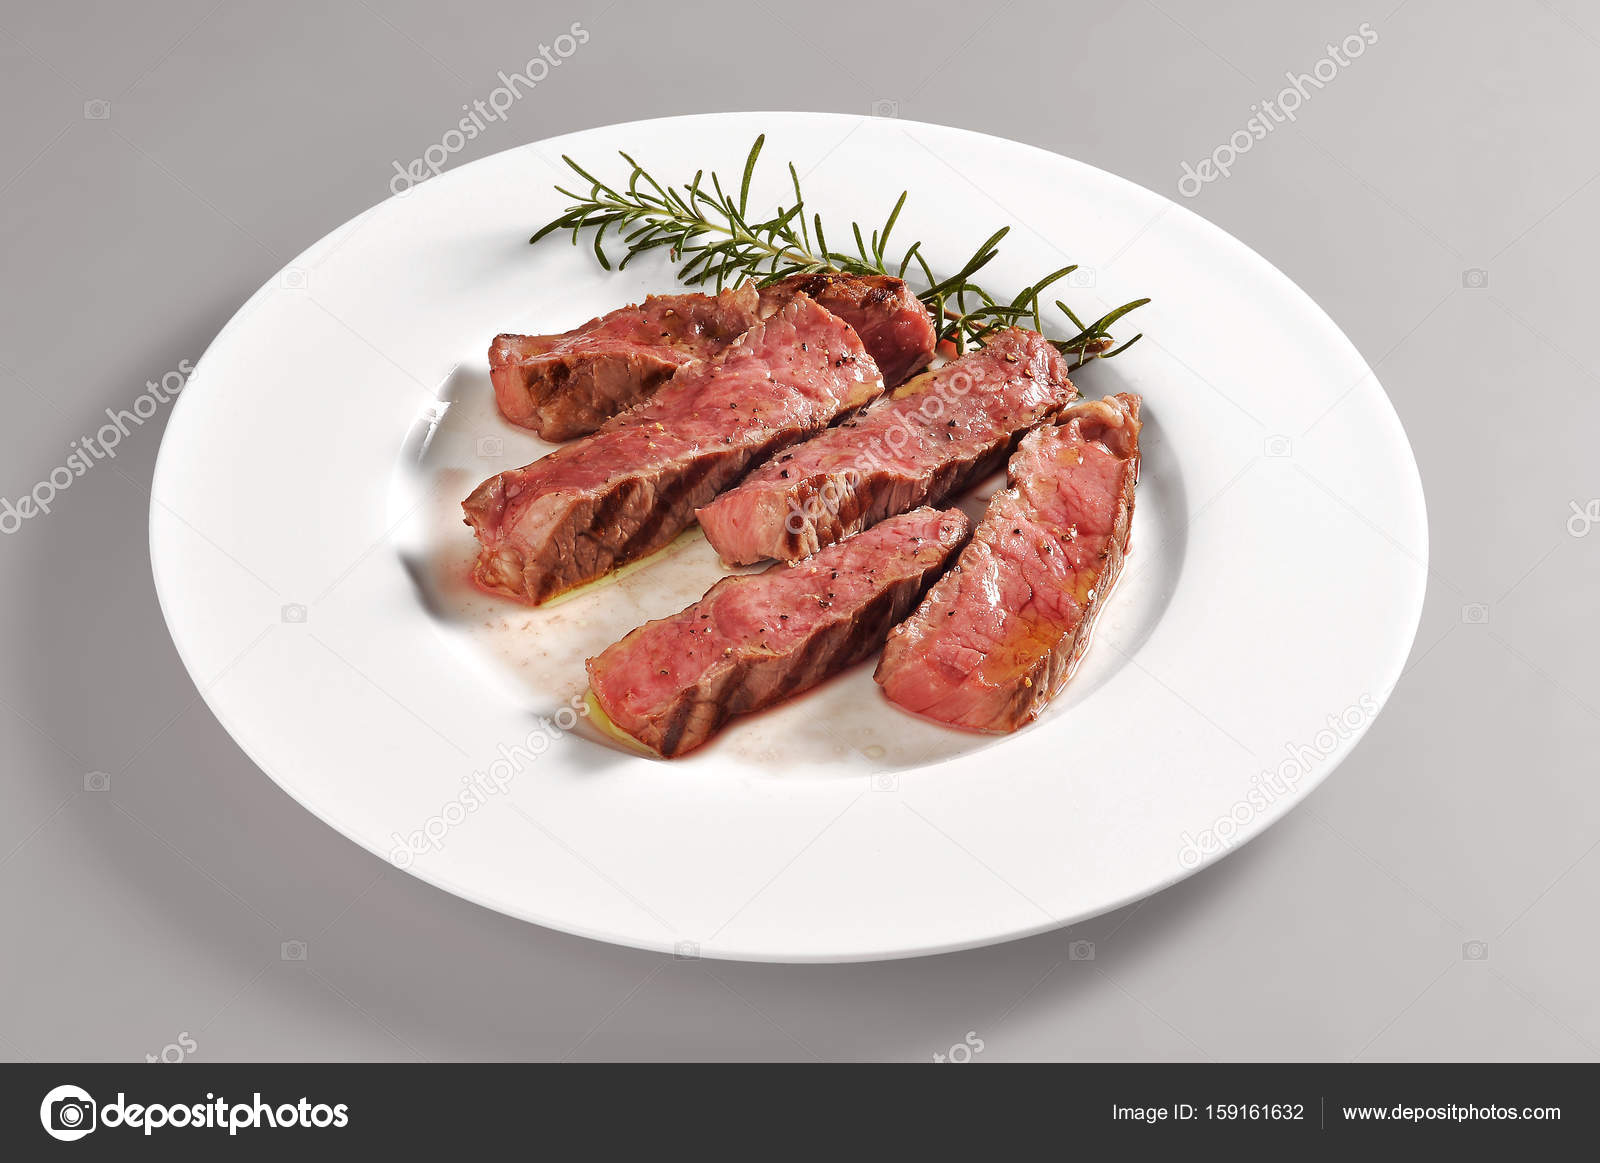 Plate With Grilled Steak Portion Stock Photo C Antoniotruzzi 159161632